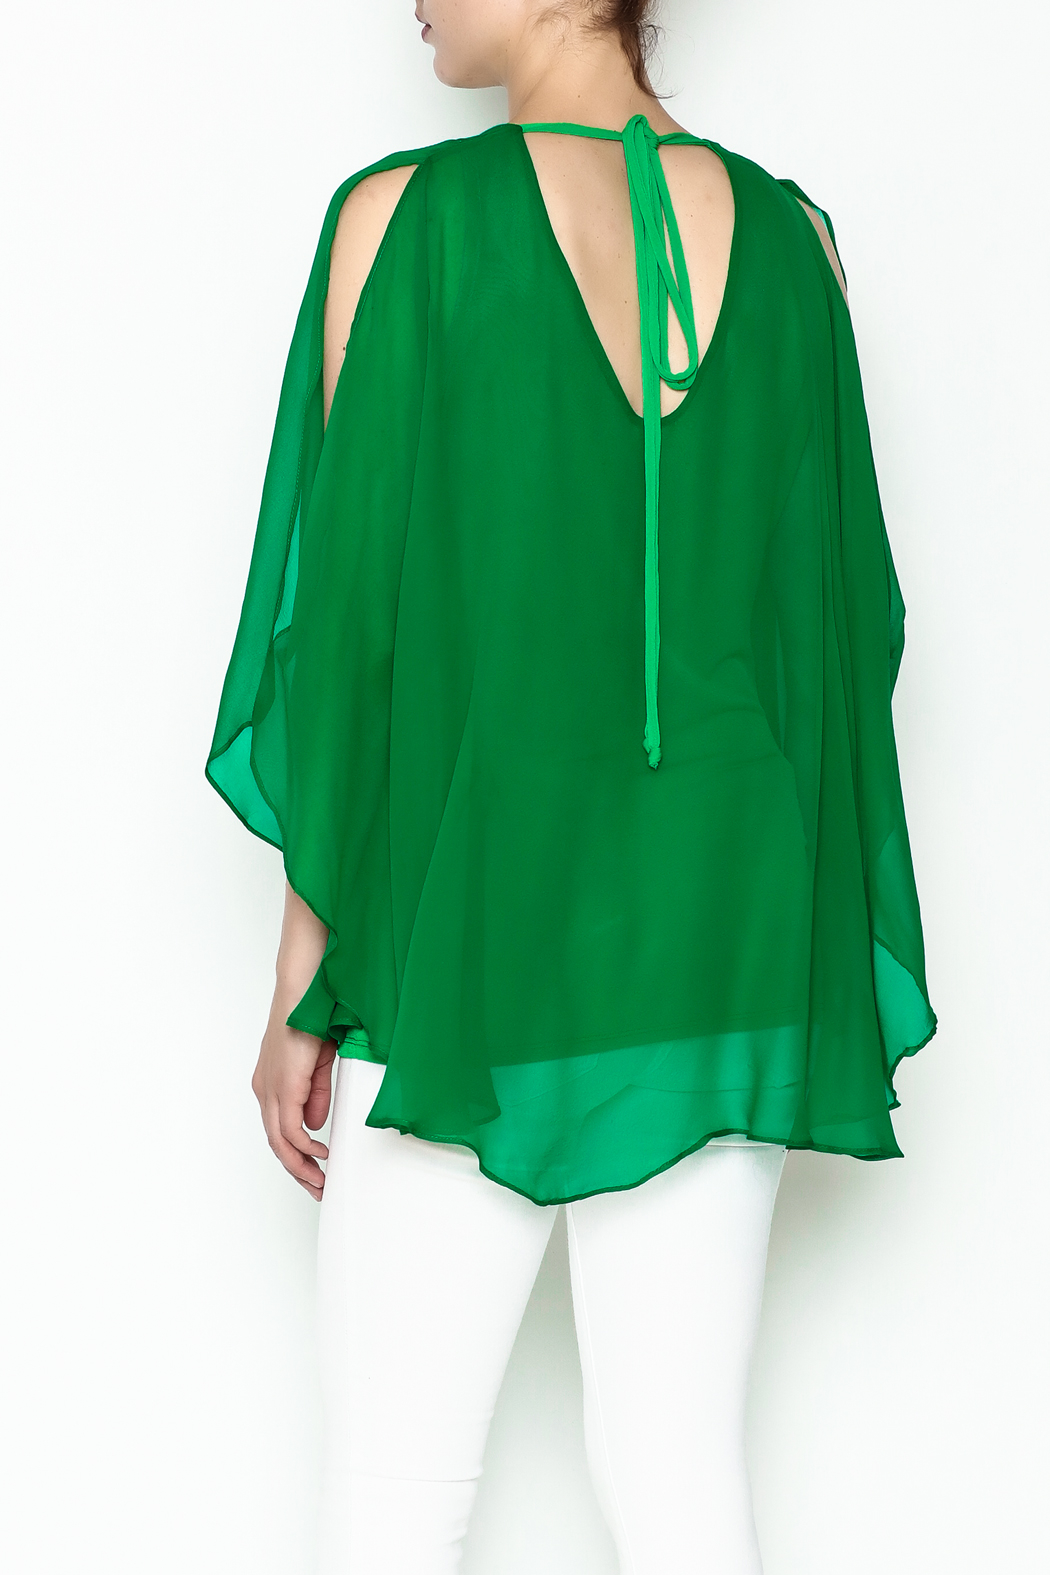 Julian Chang Sheer Overlay Blouse - Back Cropped Image